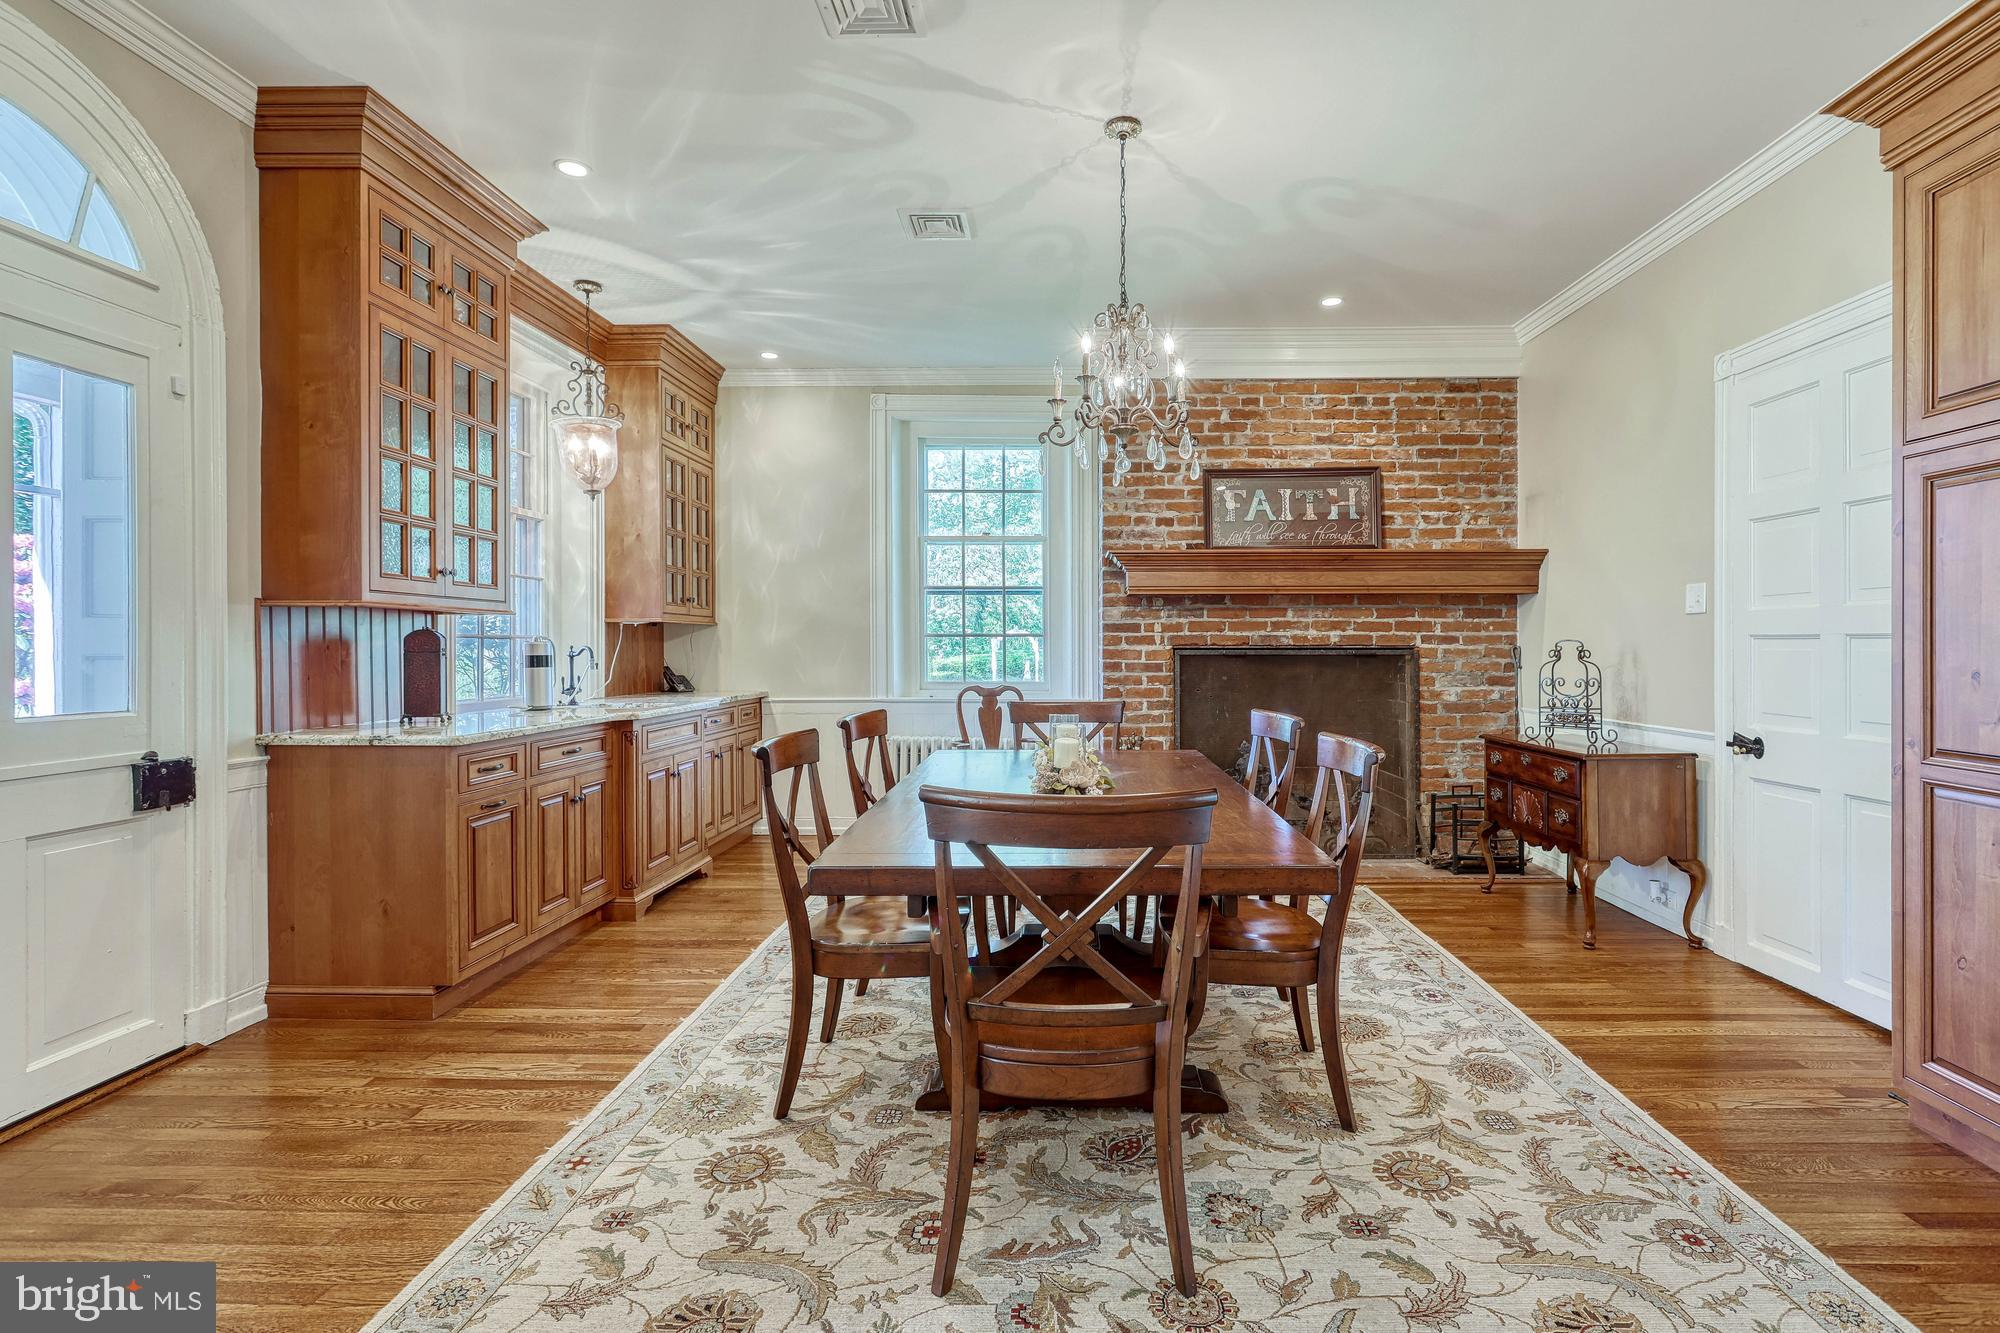 First main dining room